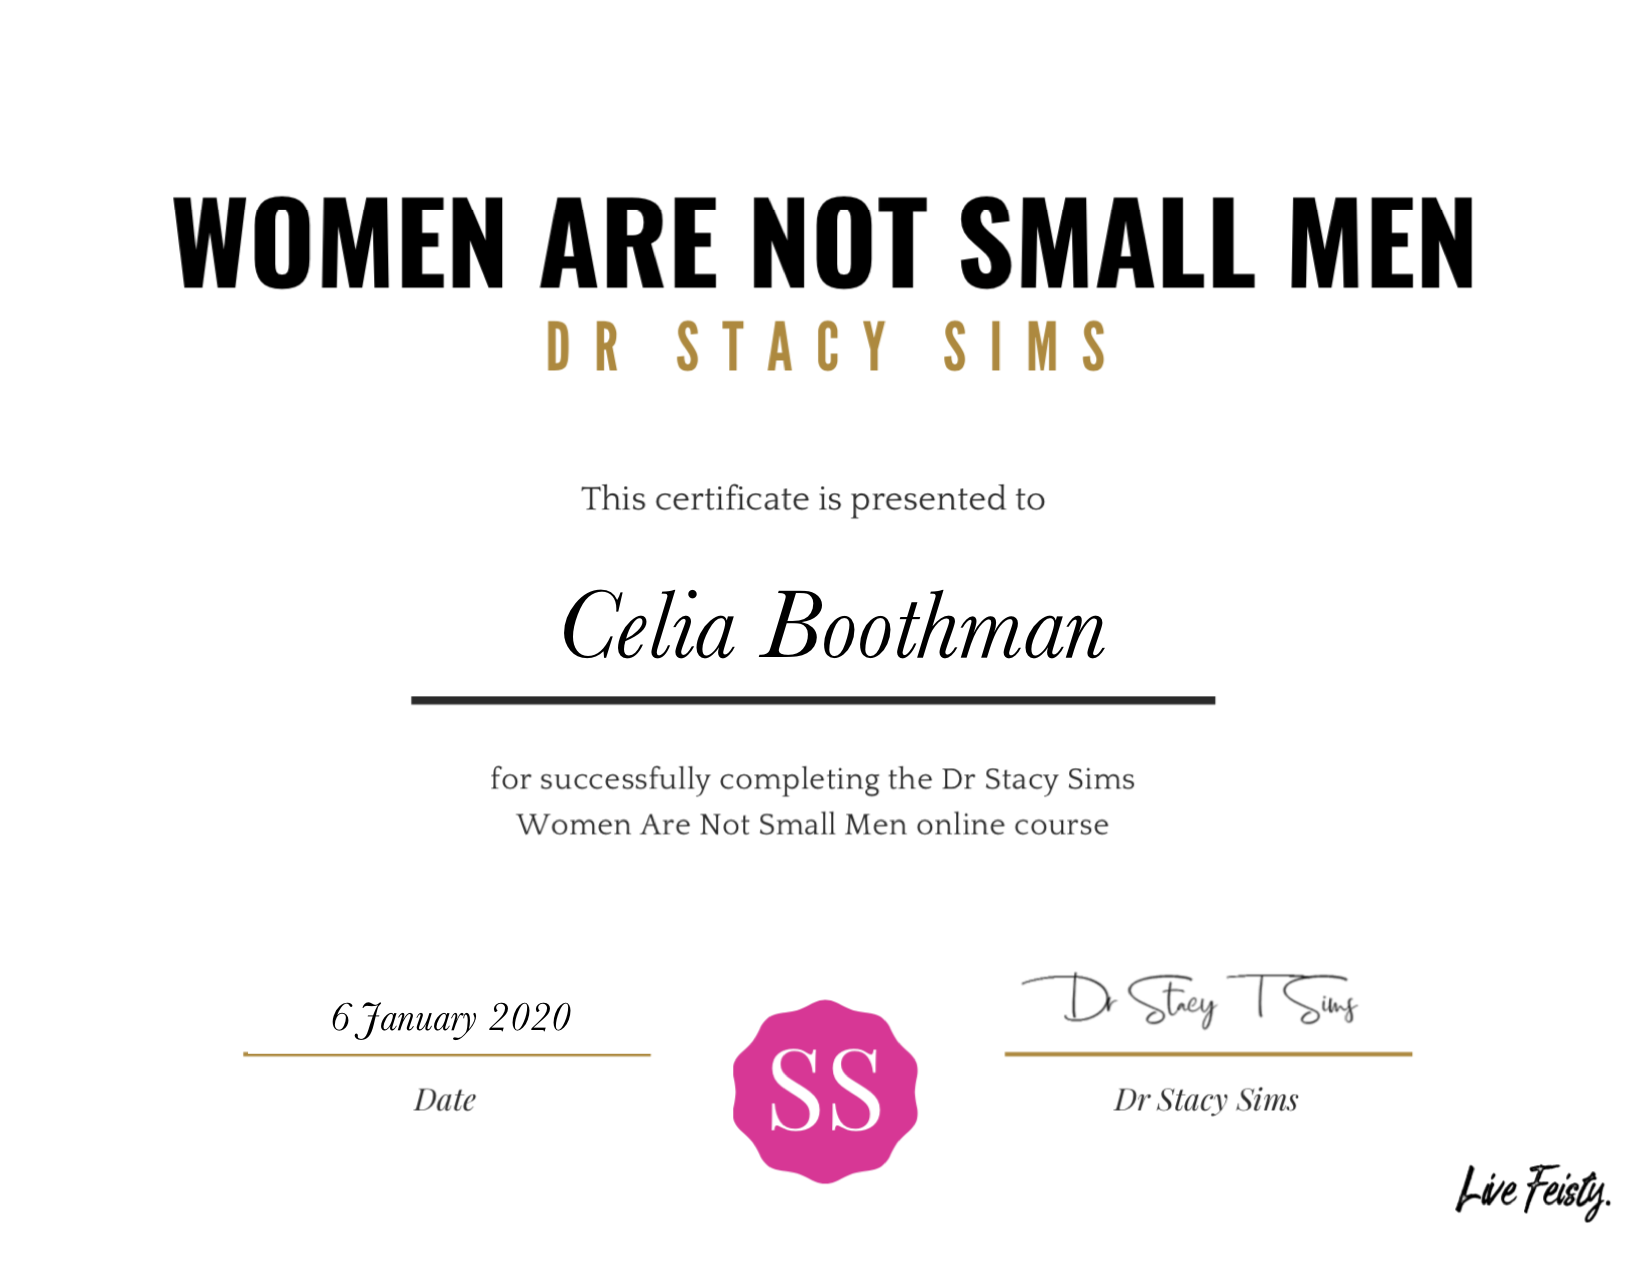 Women are not small men